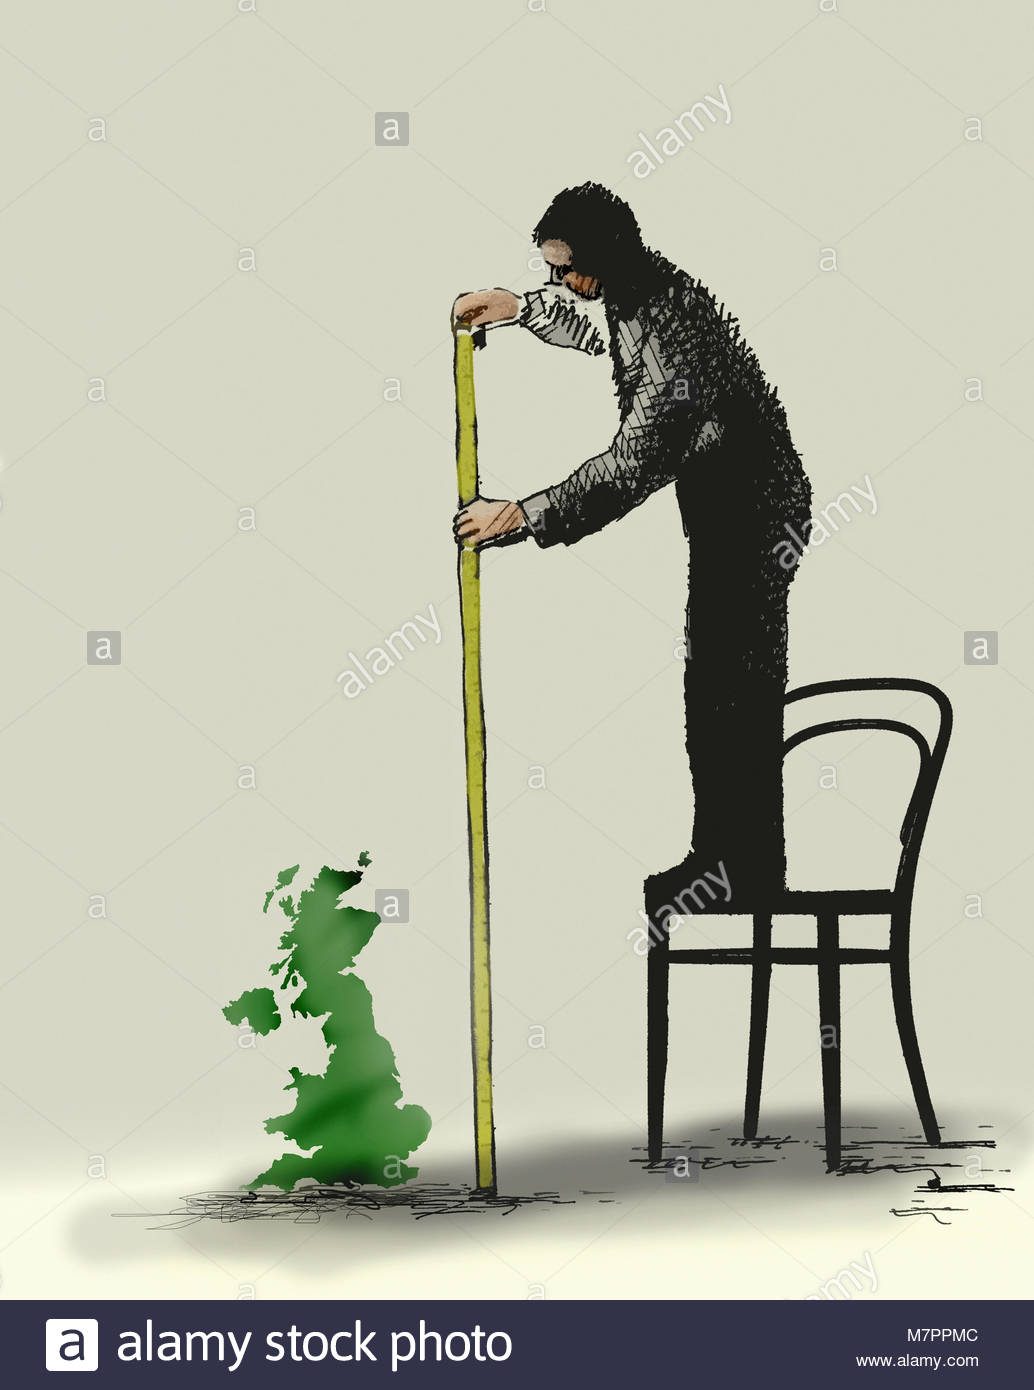 Man standing on chair measuring size of small United Kingdom - Stock Image